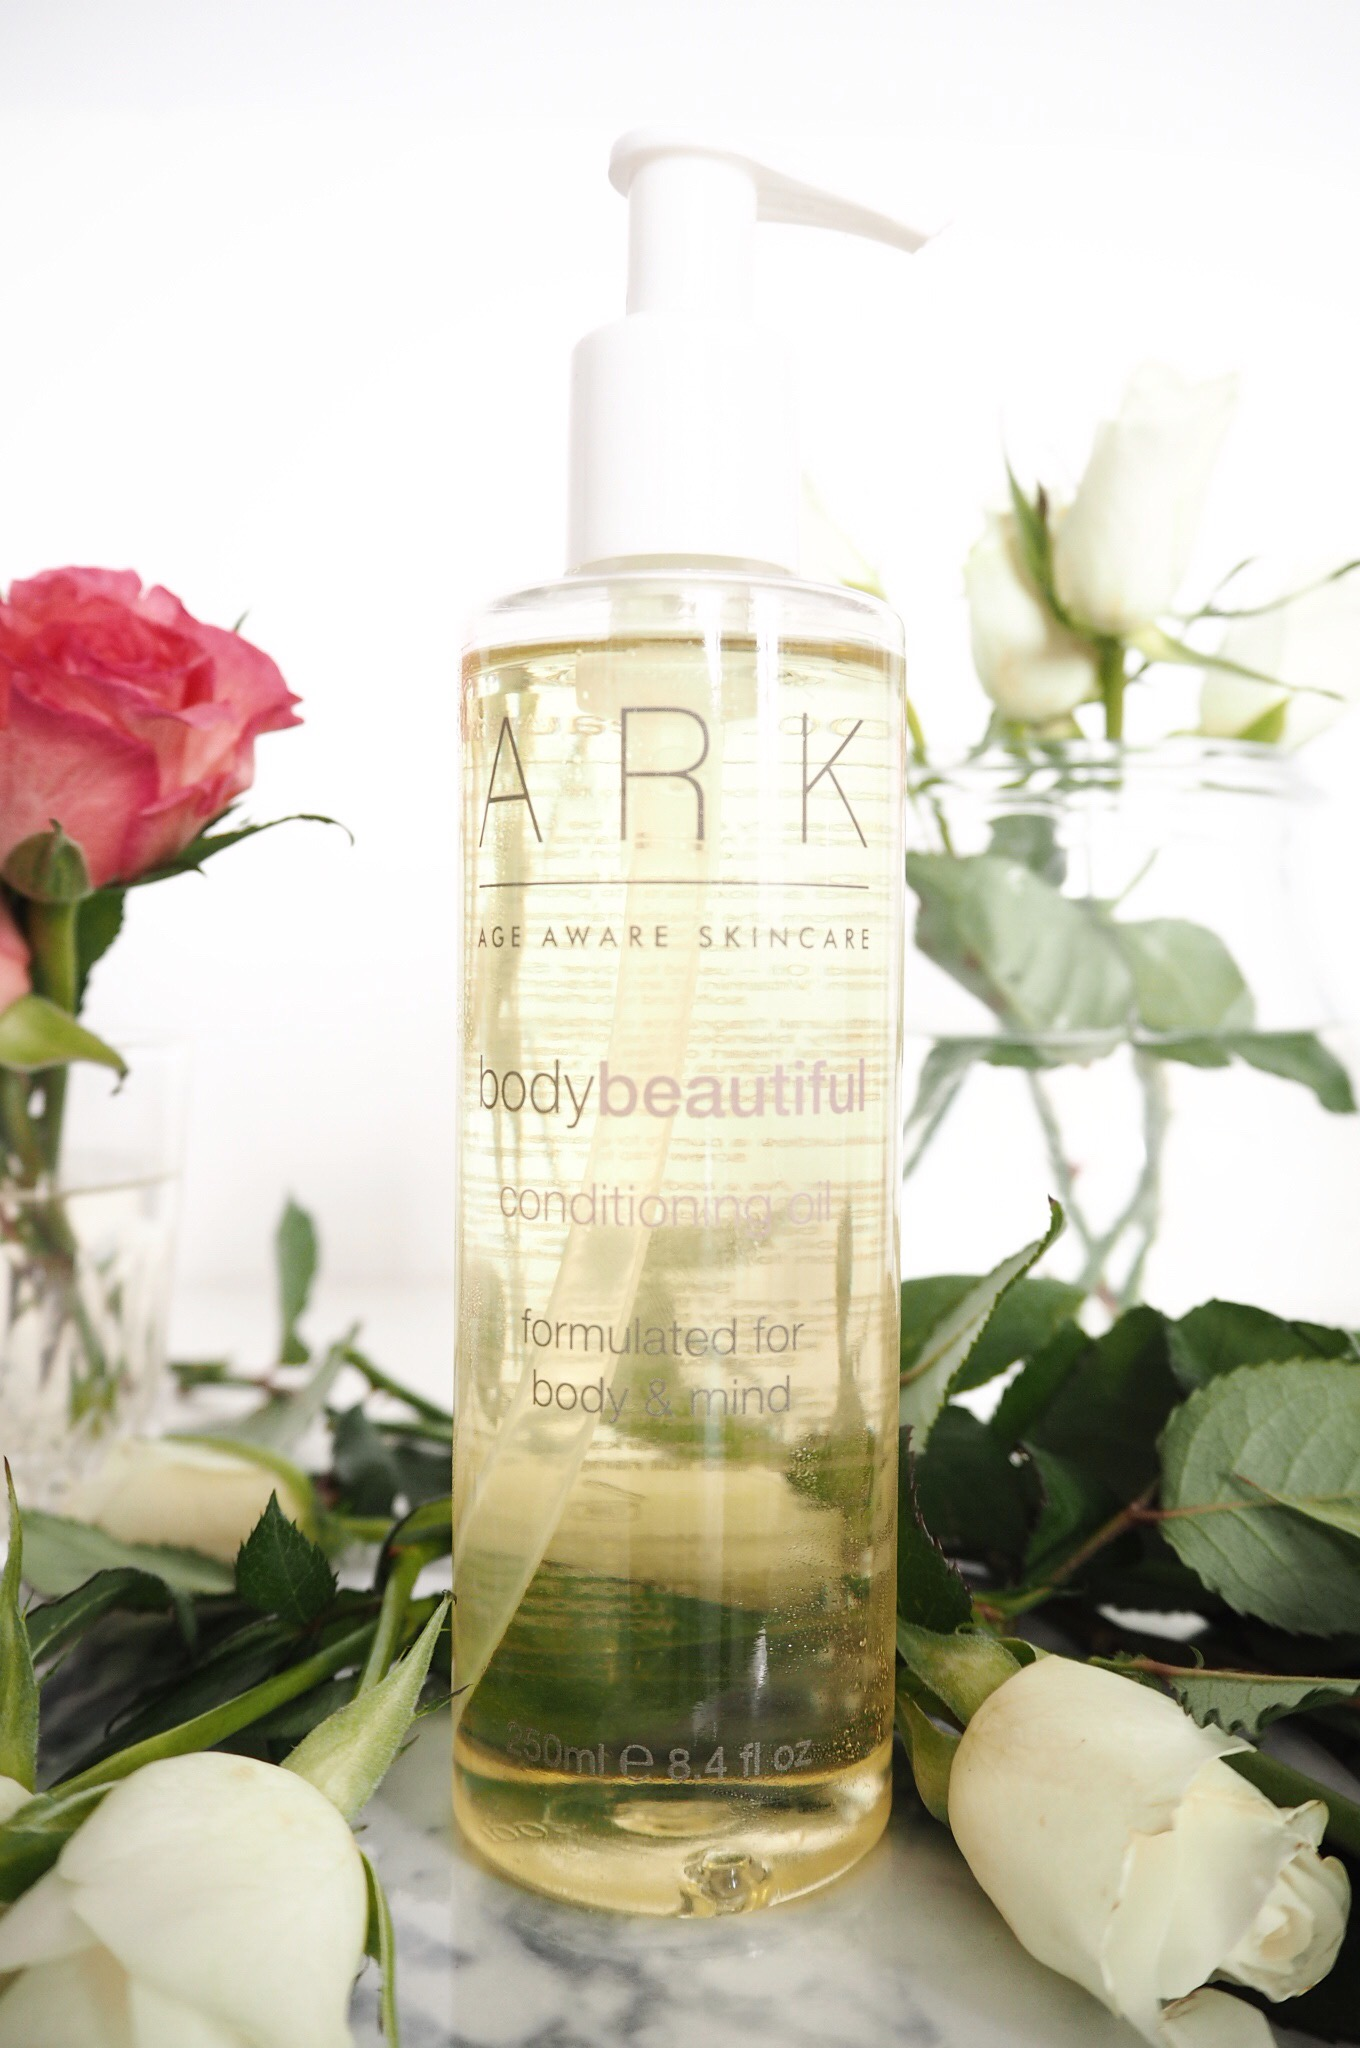 ARK Skincare Body Conditioning Oil